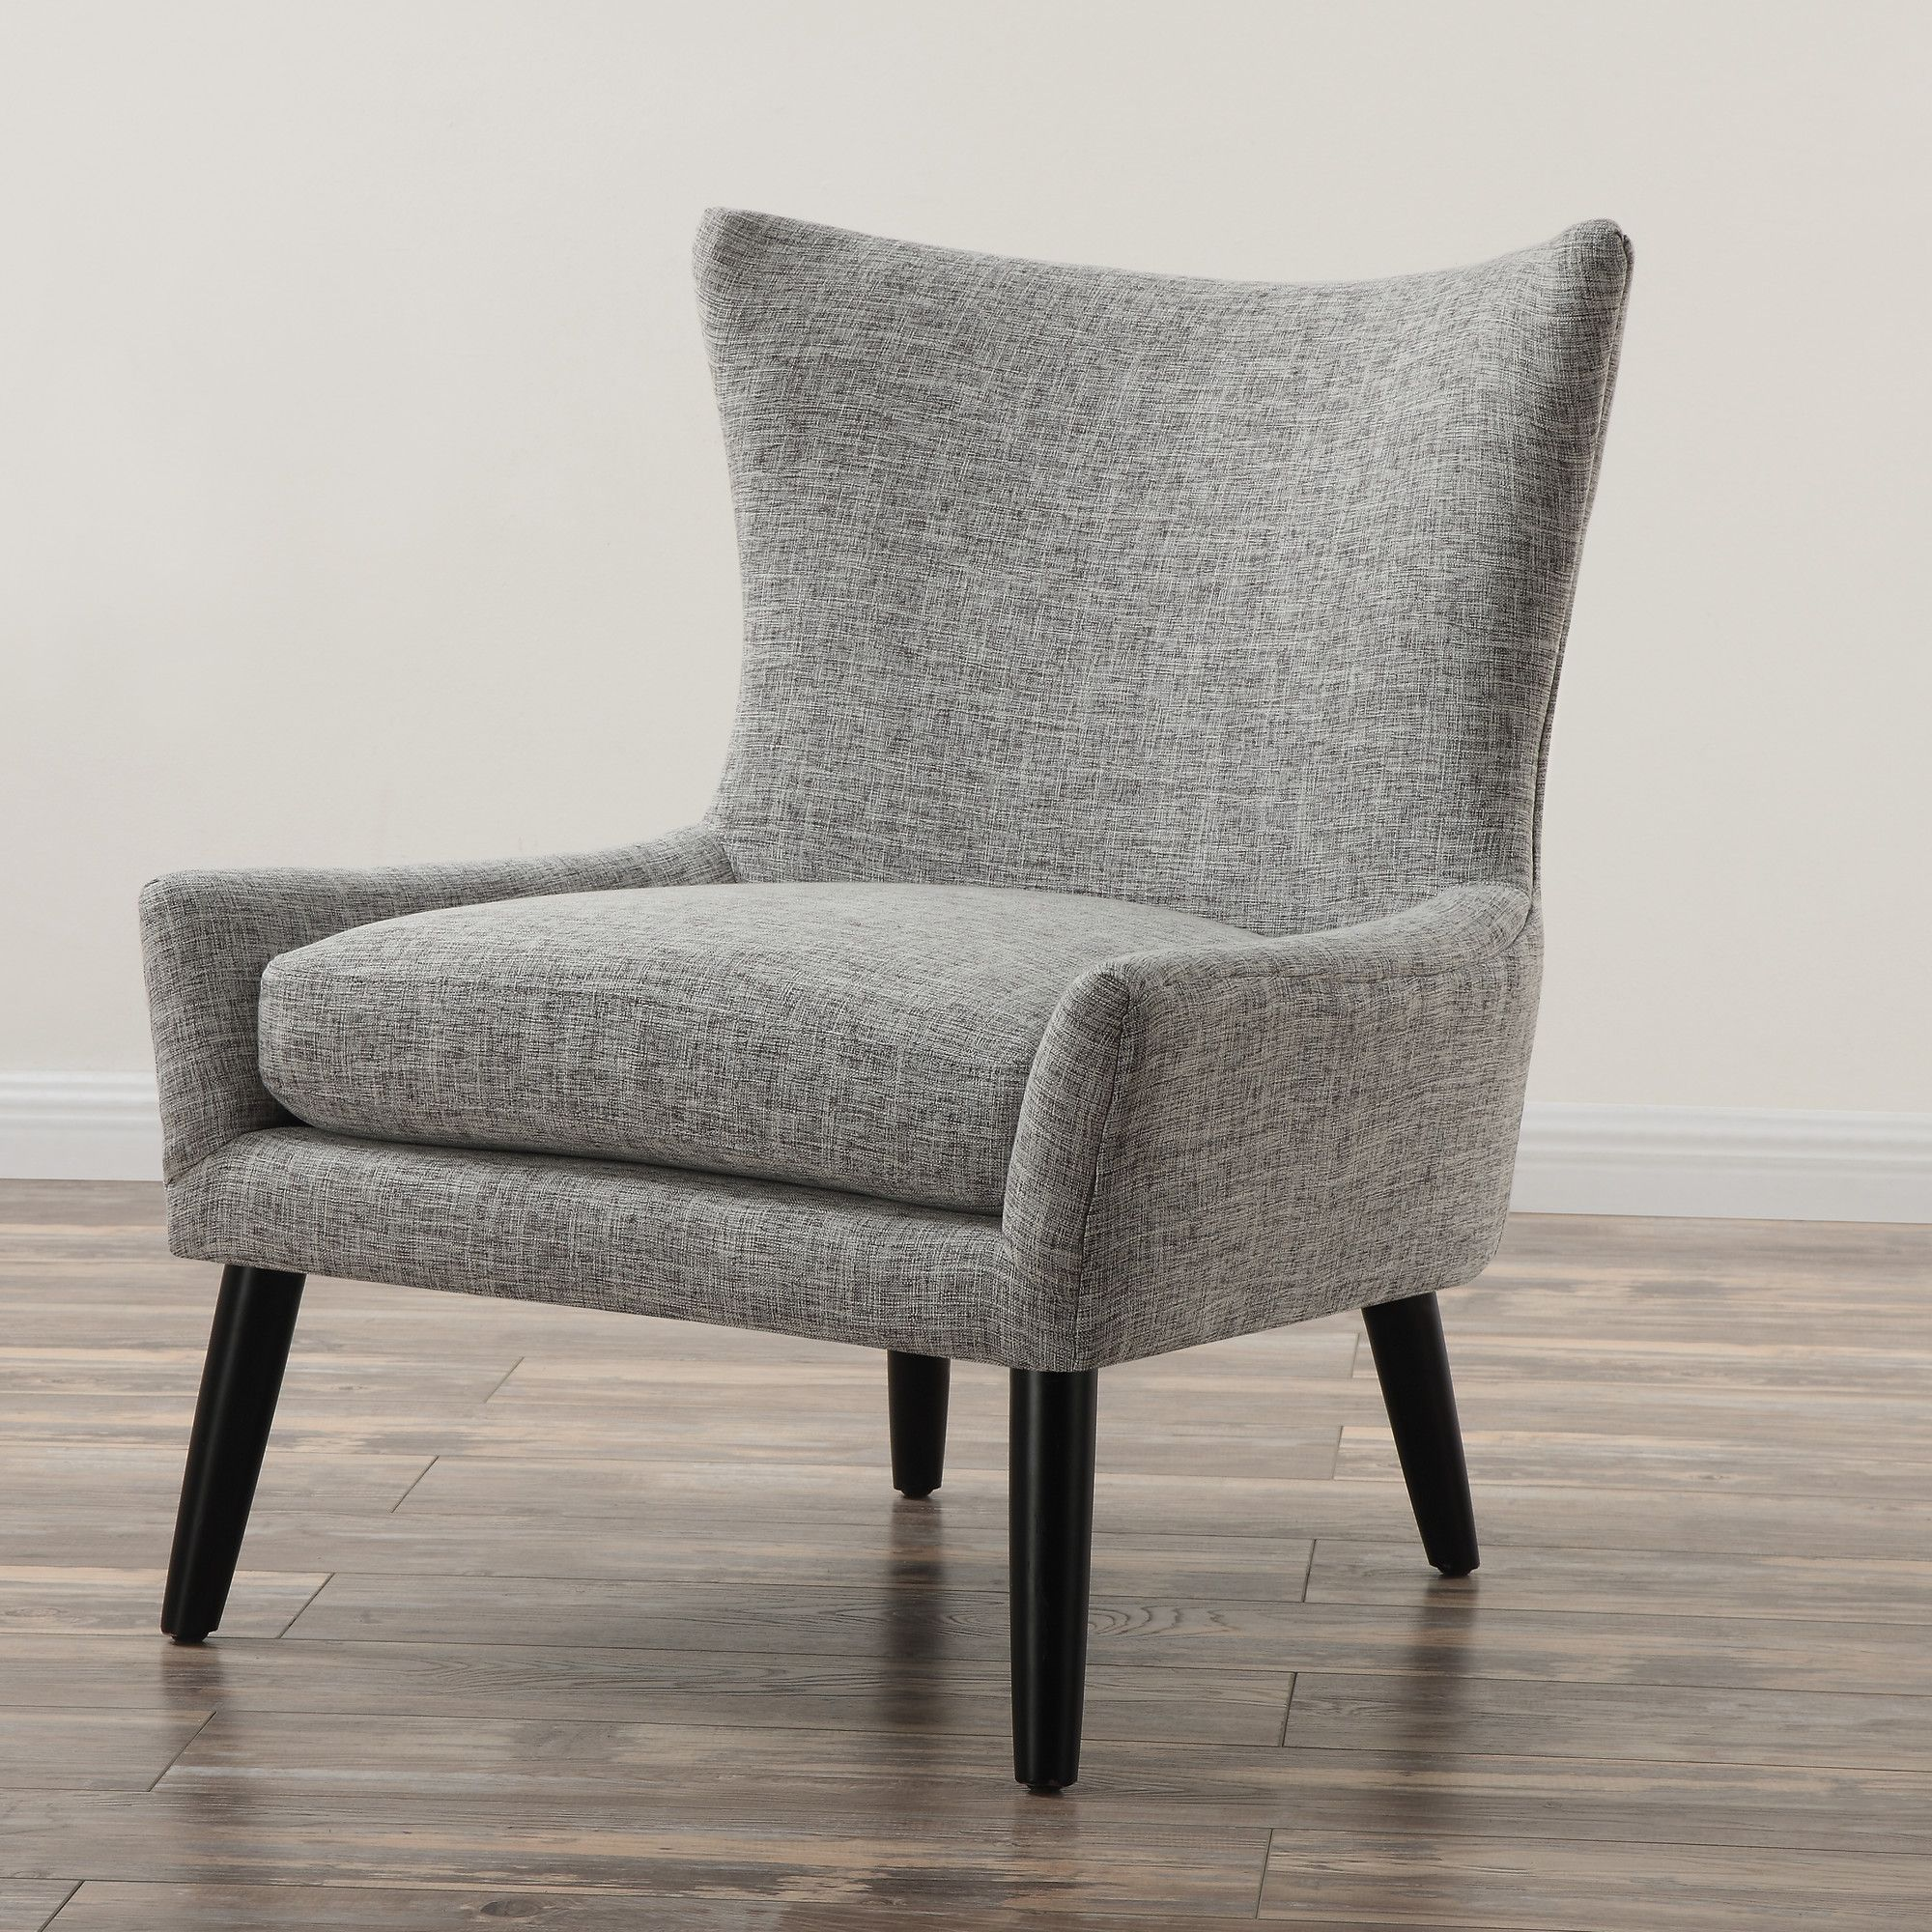 Features handmade by skilled furniture craftsman wood frame upholstered yes distressed yes upholstery material linen